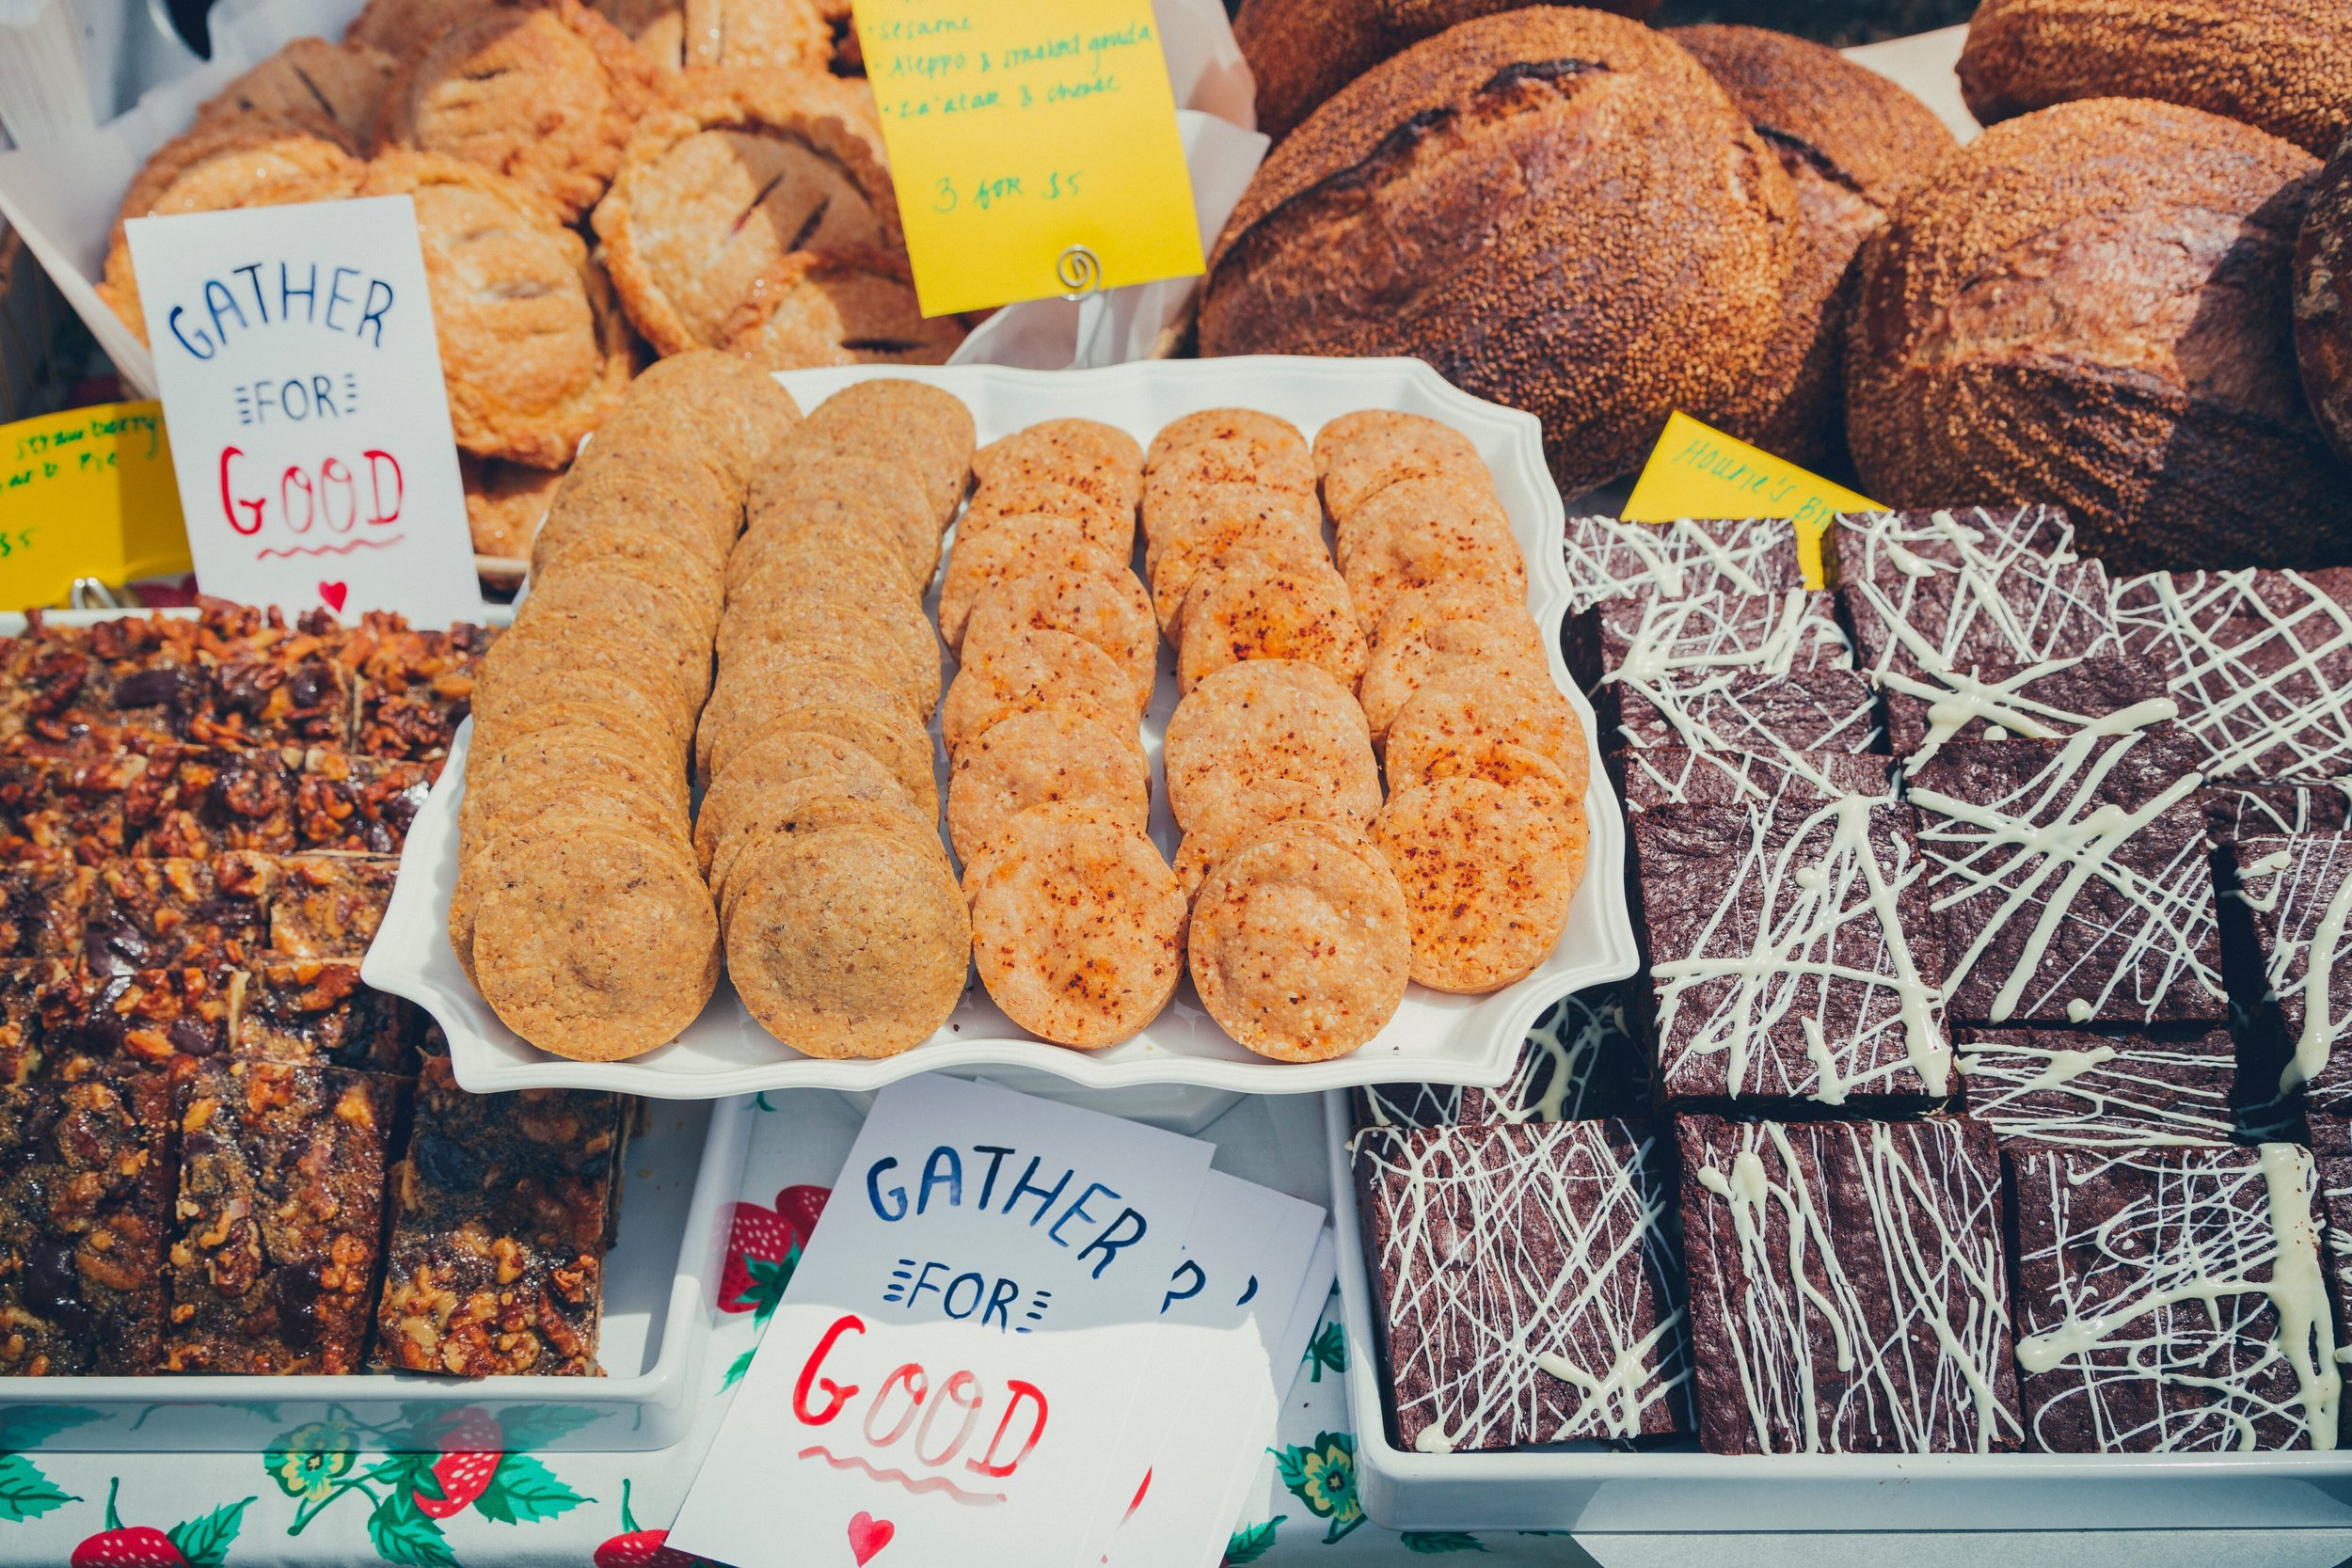 """Image depicts a photo of various baked goods for the event """"Gather for Good"""", a fundraiser and an example of the past work with nonprofits that Here's Looking at You has participated in."""